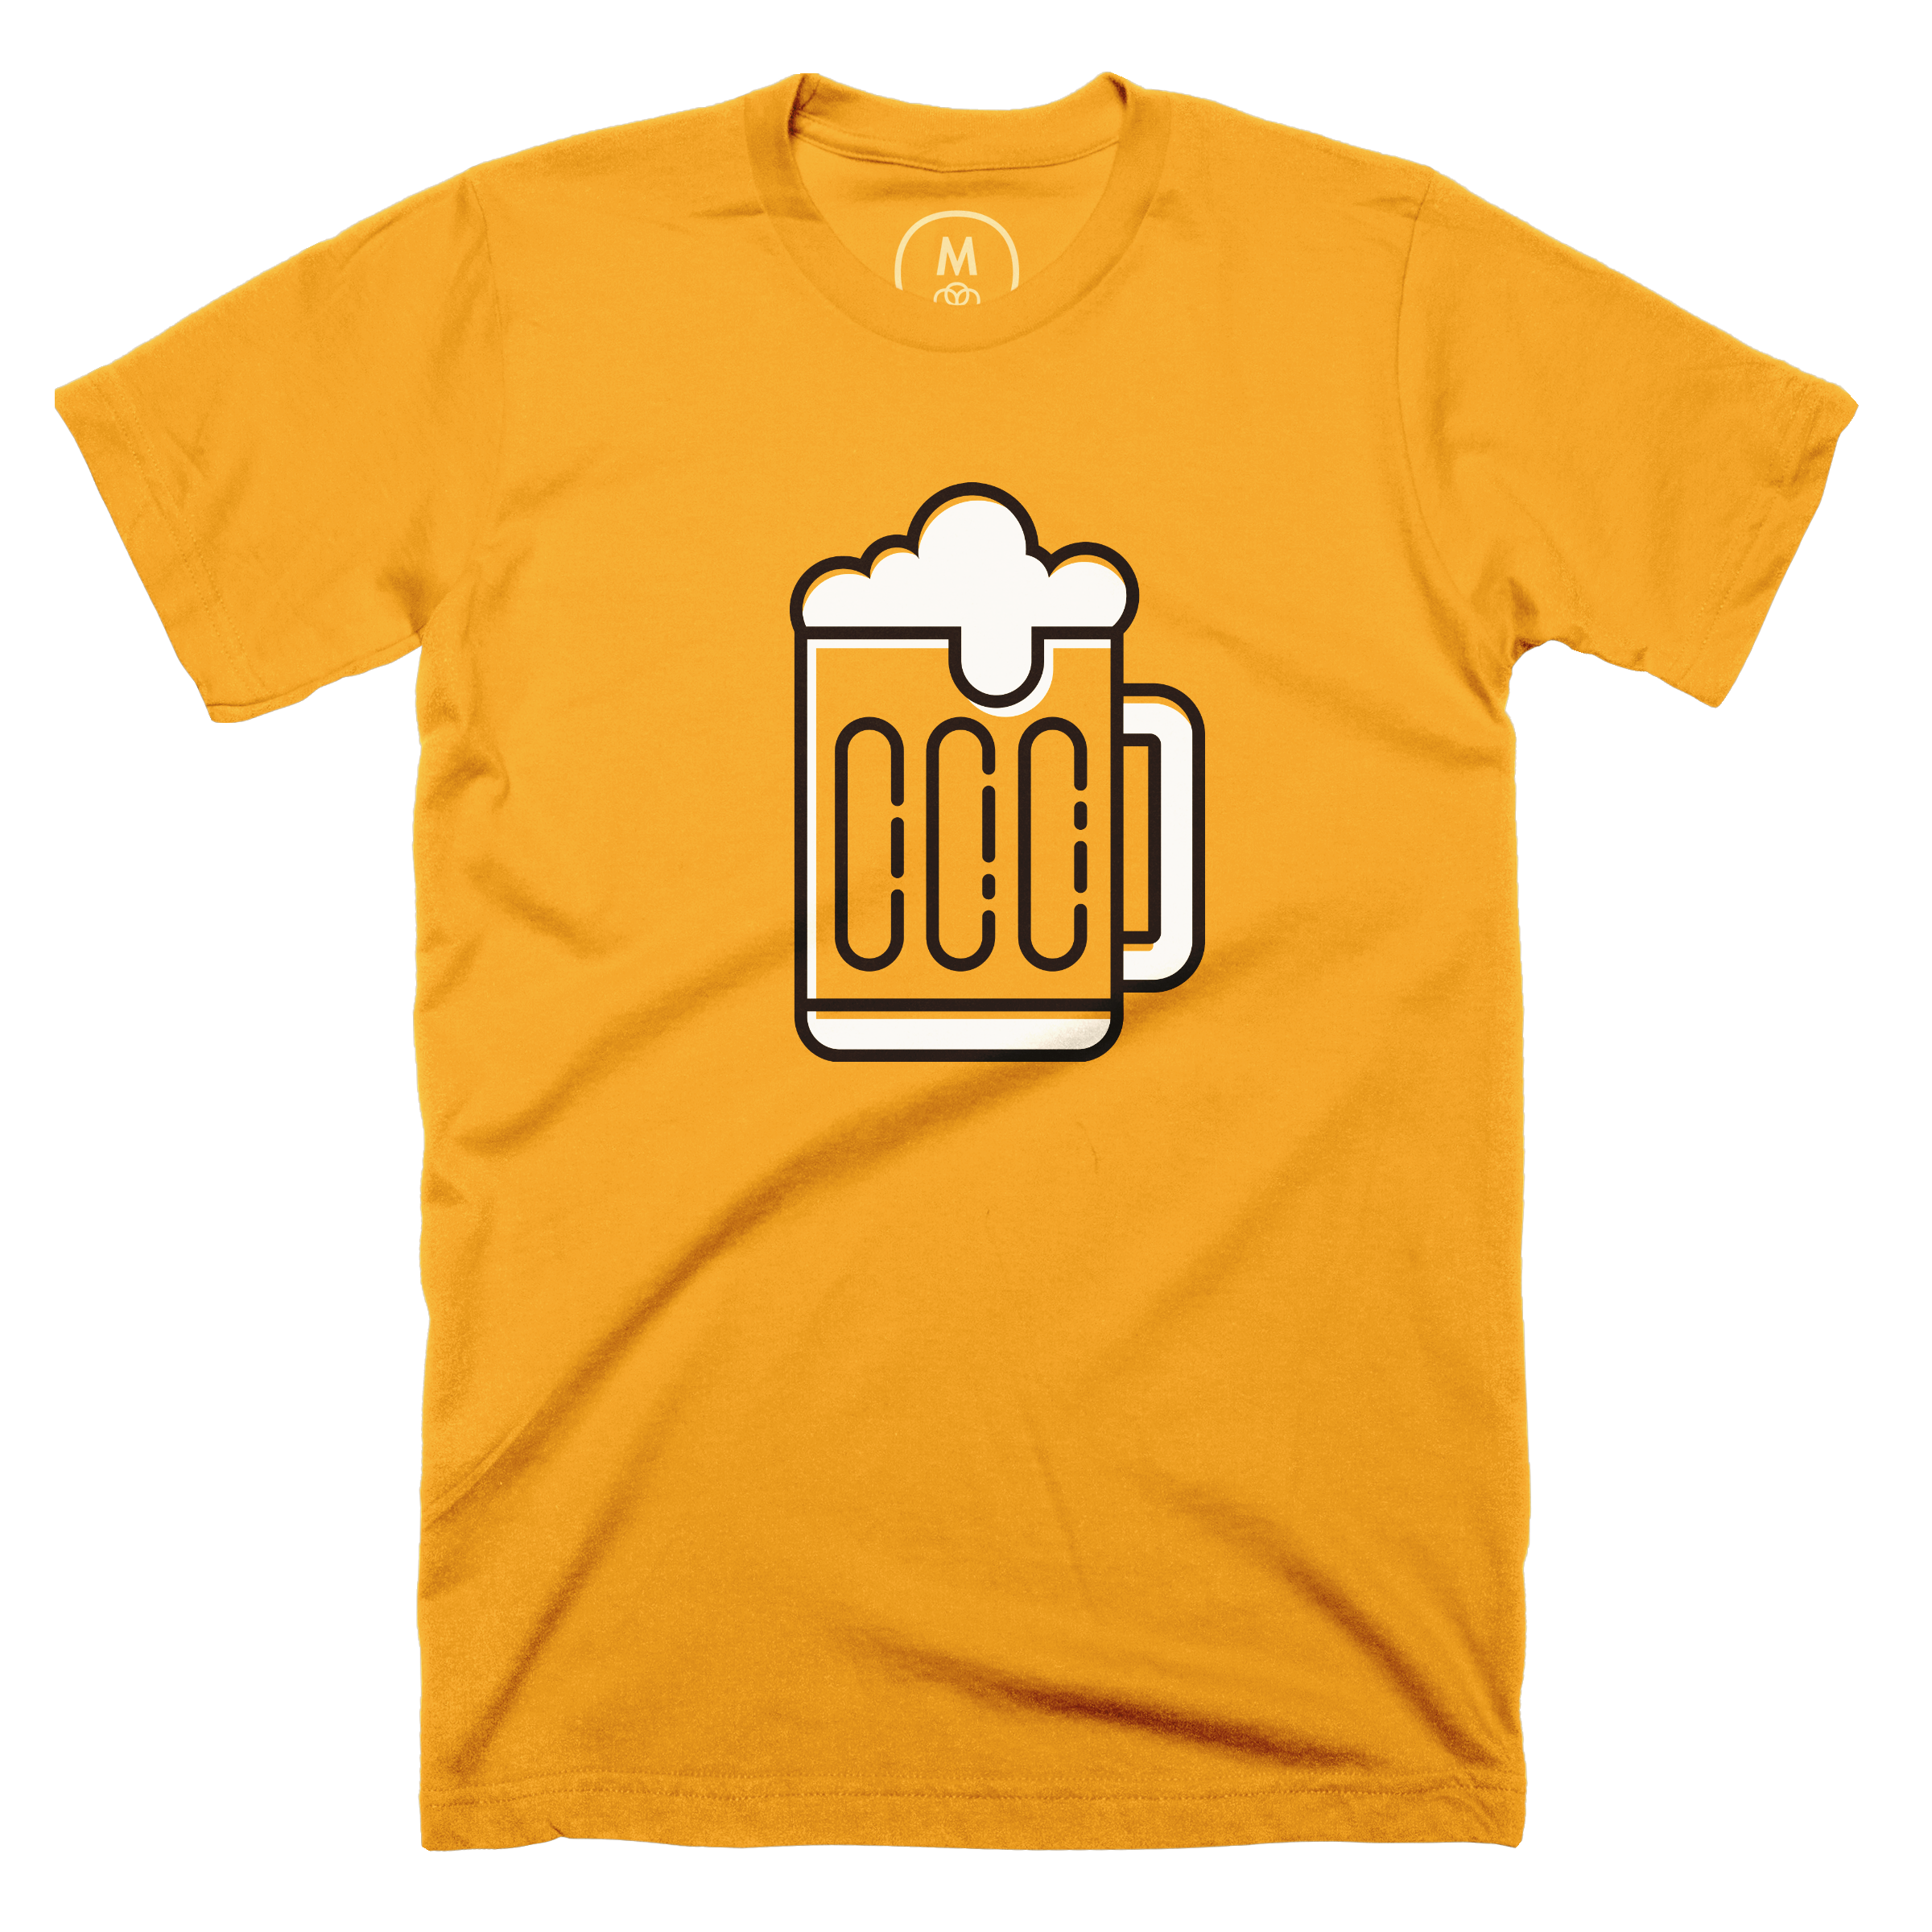 The Beer Shirt